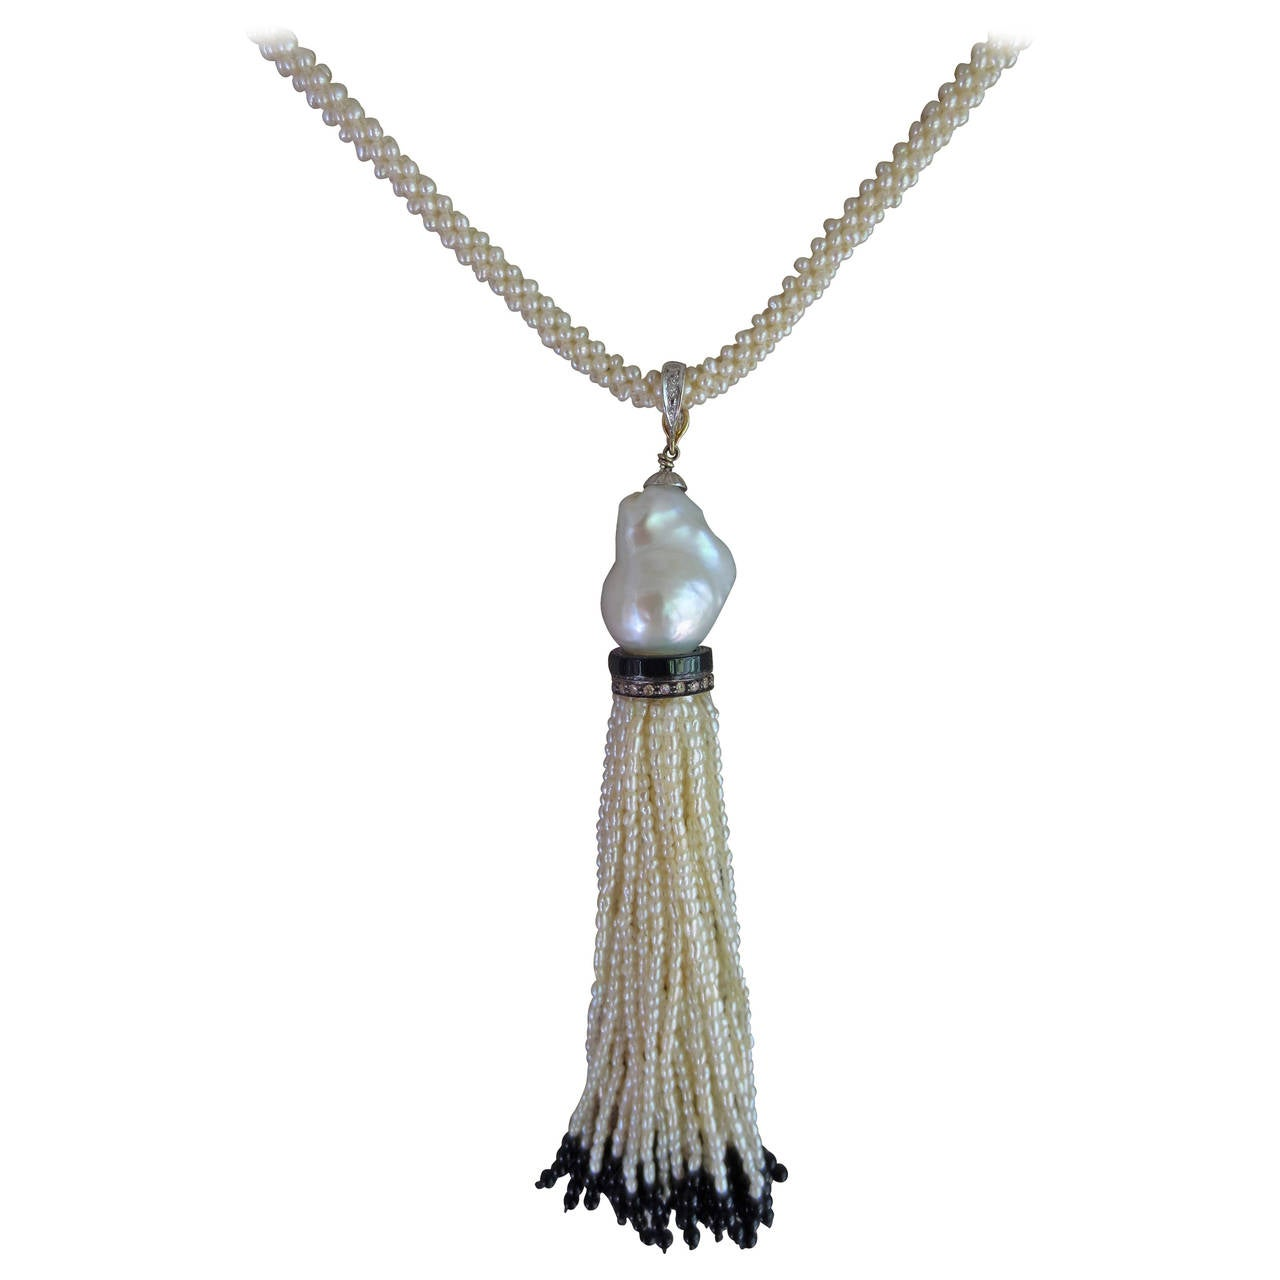 Marina J Seed Pearl Long Rope-Like Sautoir Necklace with Tassel